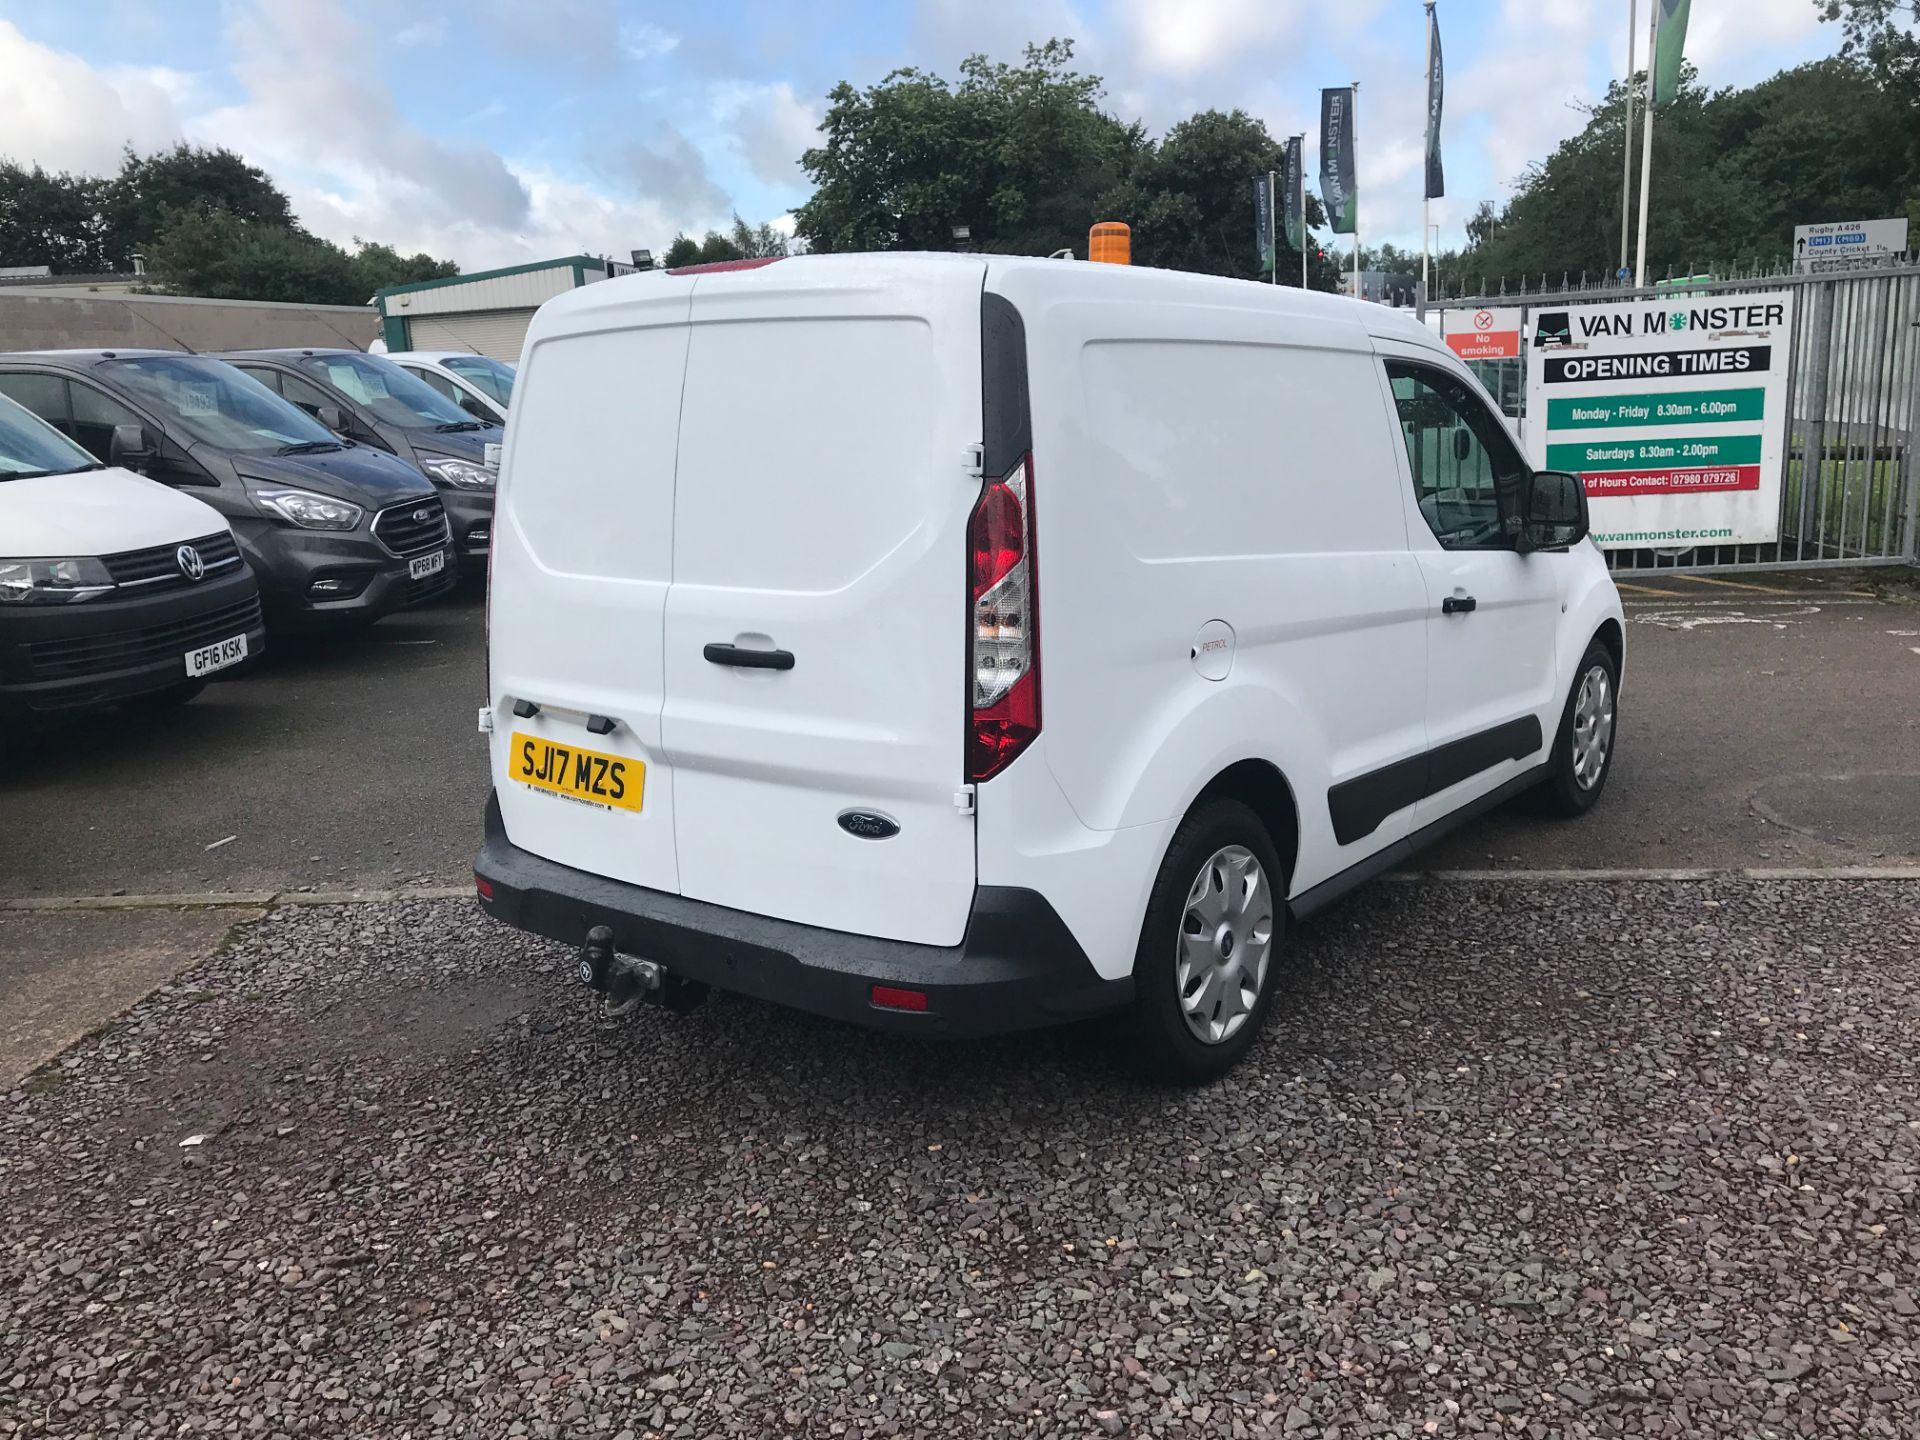 2017 Ford Transit Connect 200 L1 1.0 100PS TREND (PETROL) (SJ17MZS) Image 3